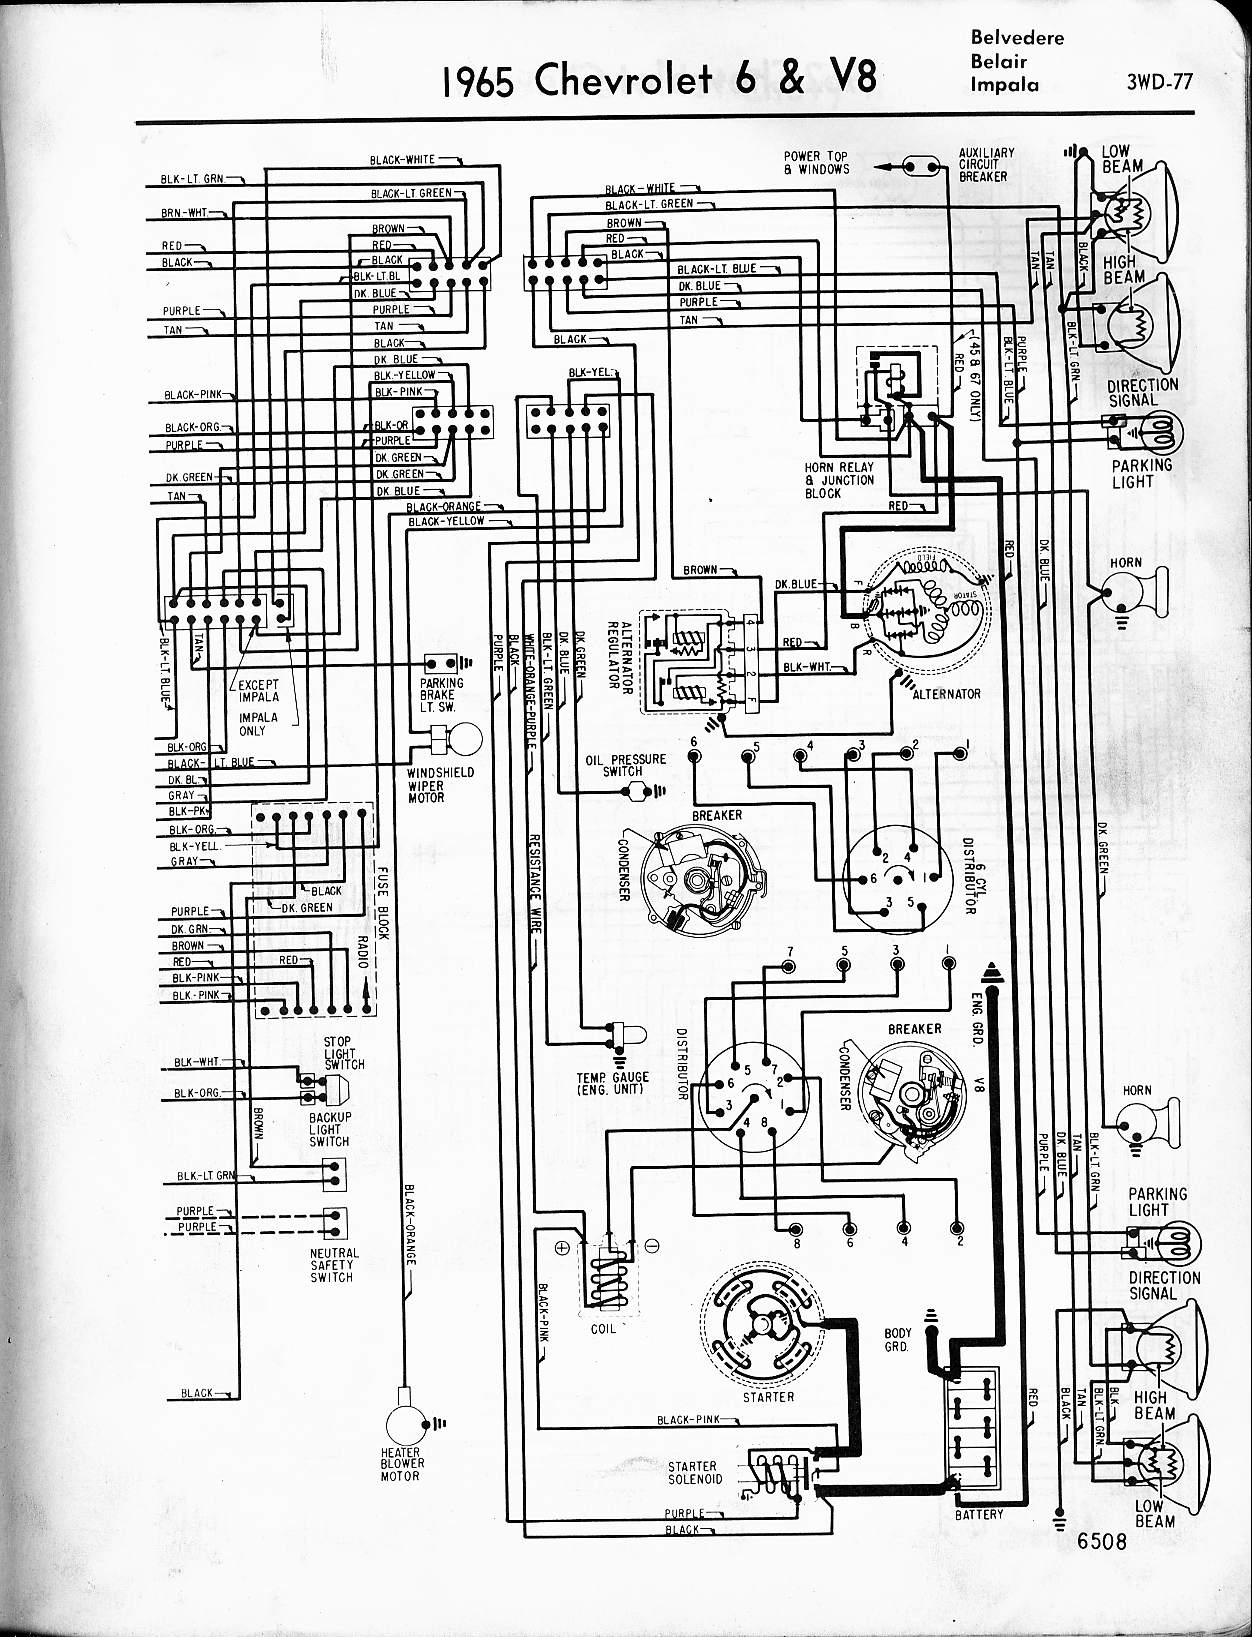 chevy diagrams on 1968 Camaro Wiring Diagram Chevy TBI Wiring Harness for 1965 impalla wiring diagram figure a figure b